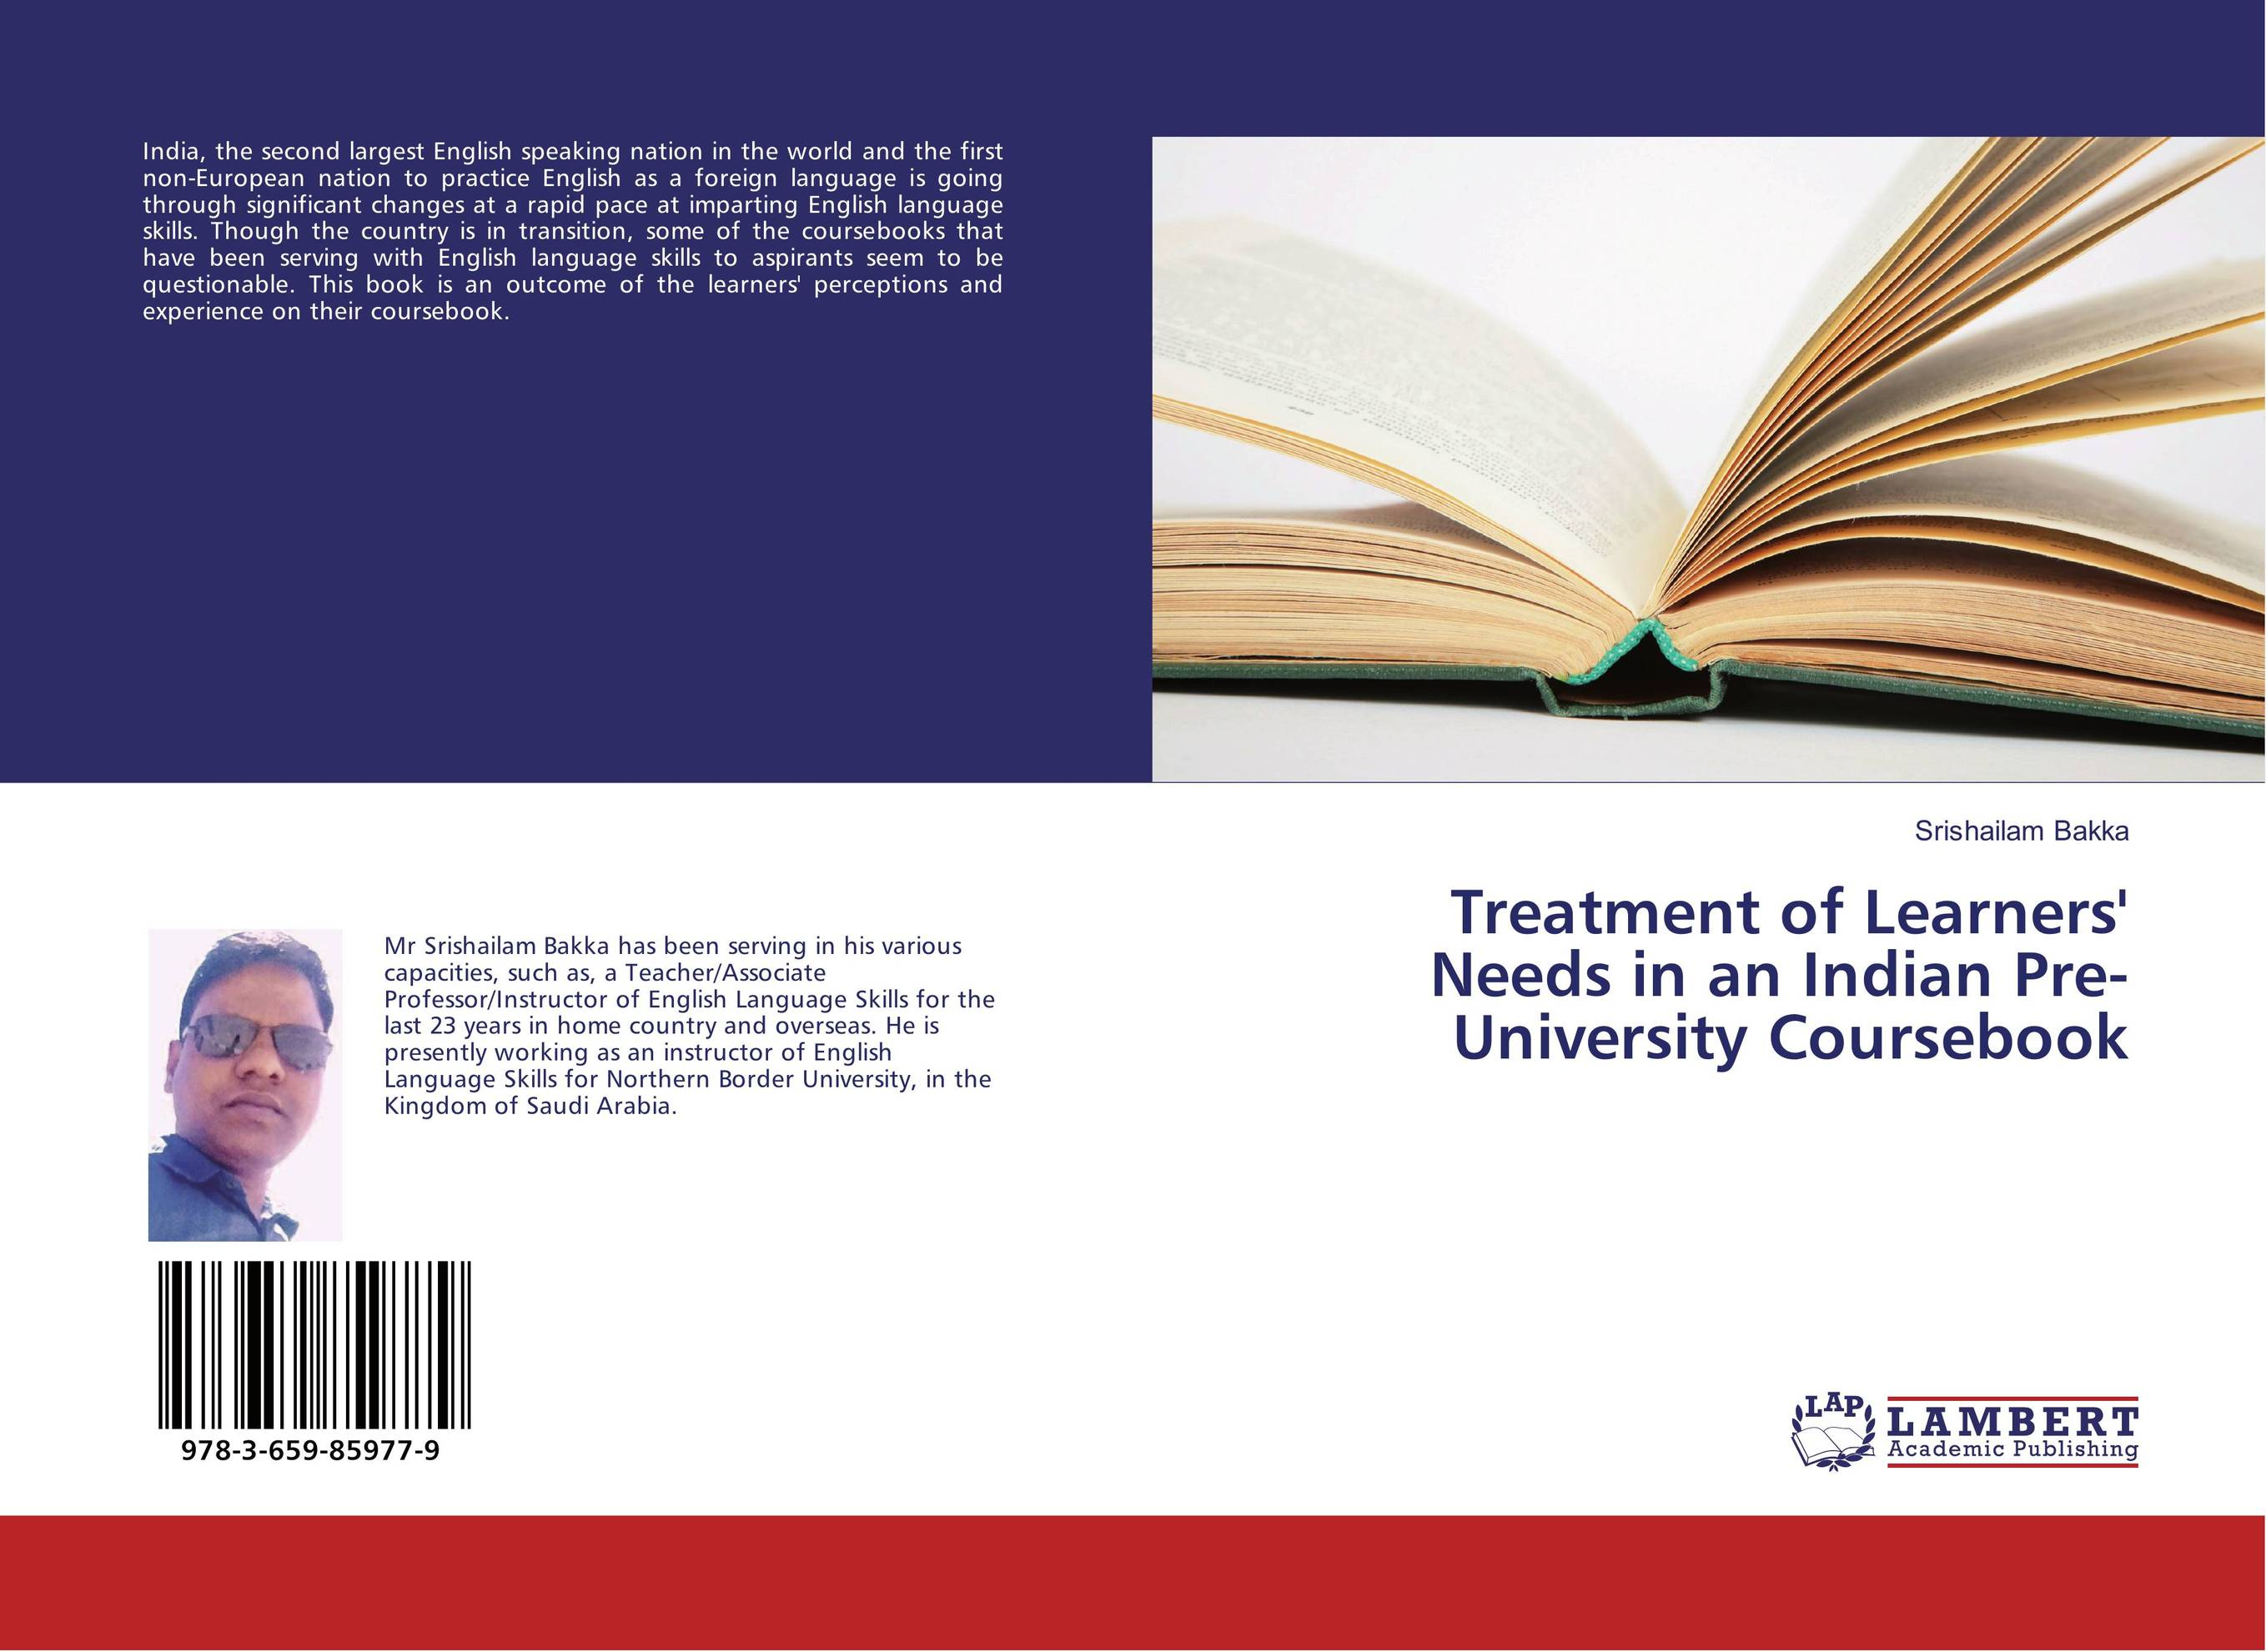 Treatment of Learners' Needs in an Indian Pre-University Coursebook teacher s use of english coursebooks with primary school learners